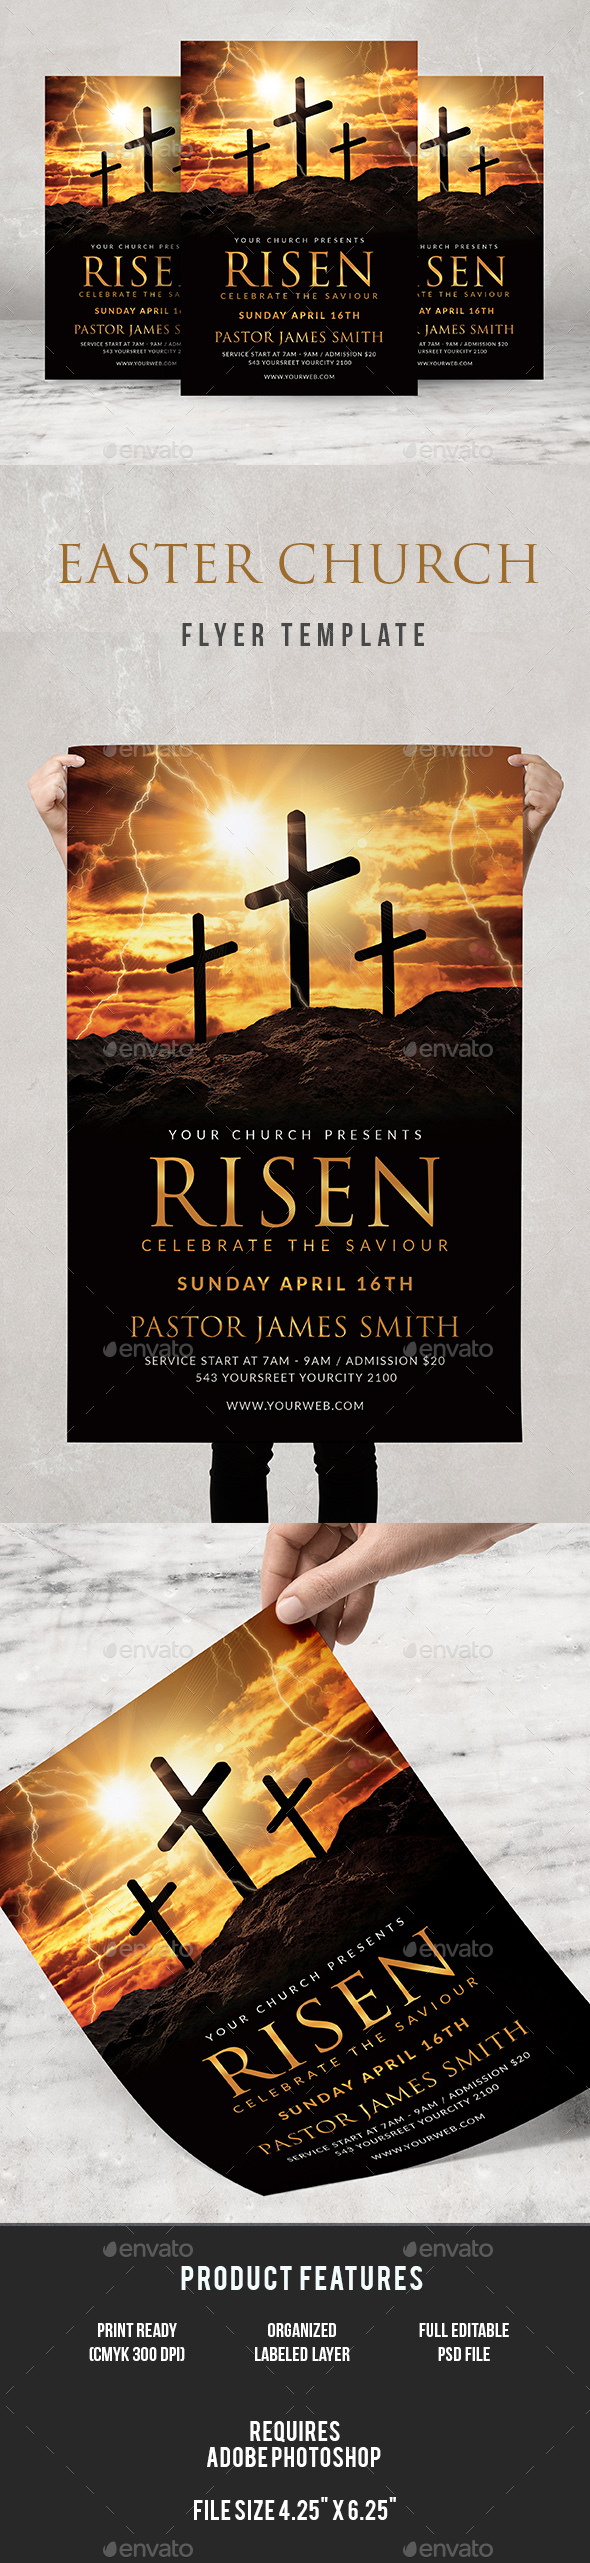 Risen Church Flyer - Church Flyers